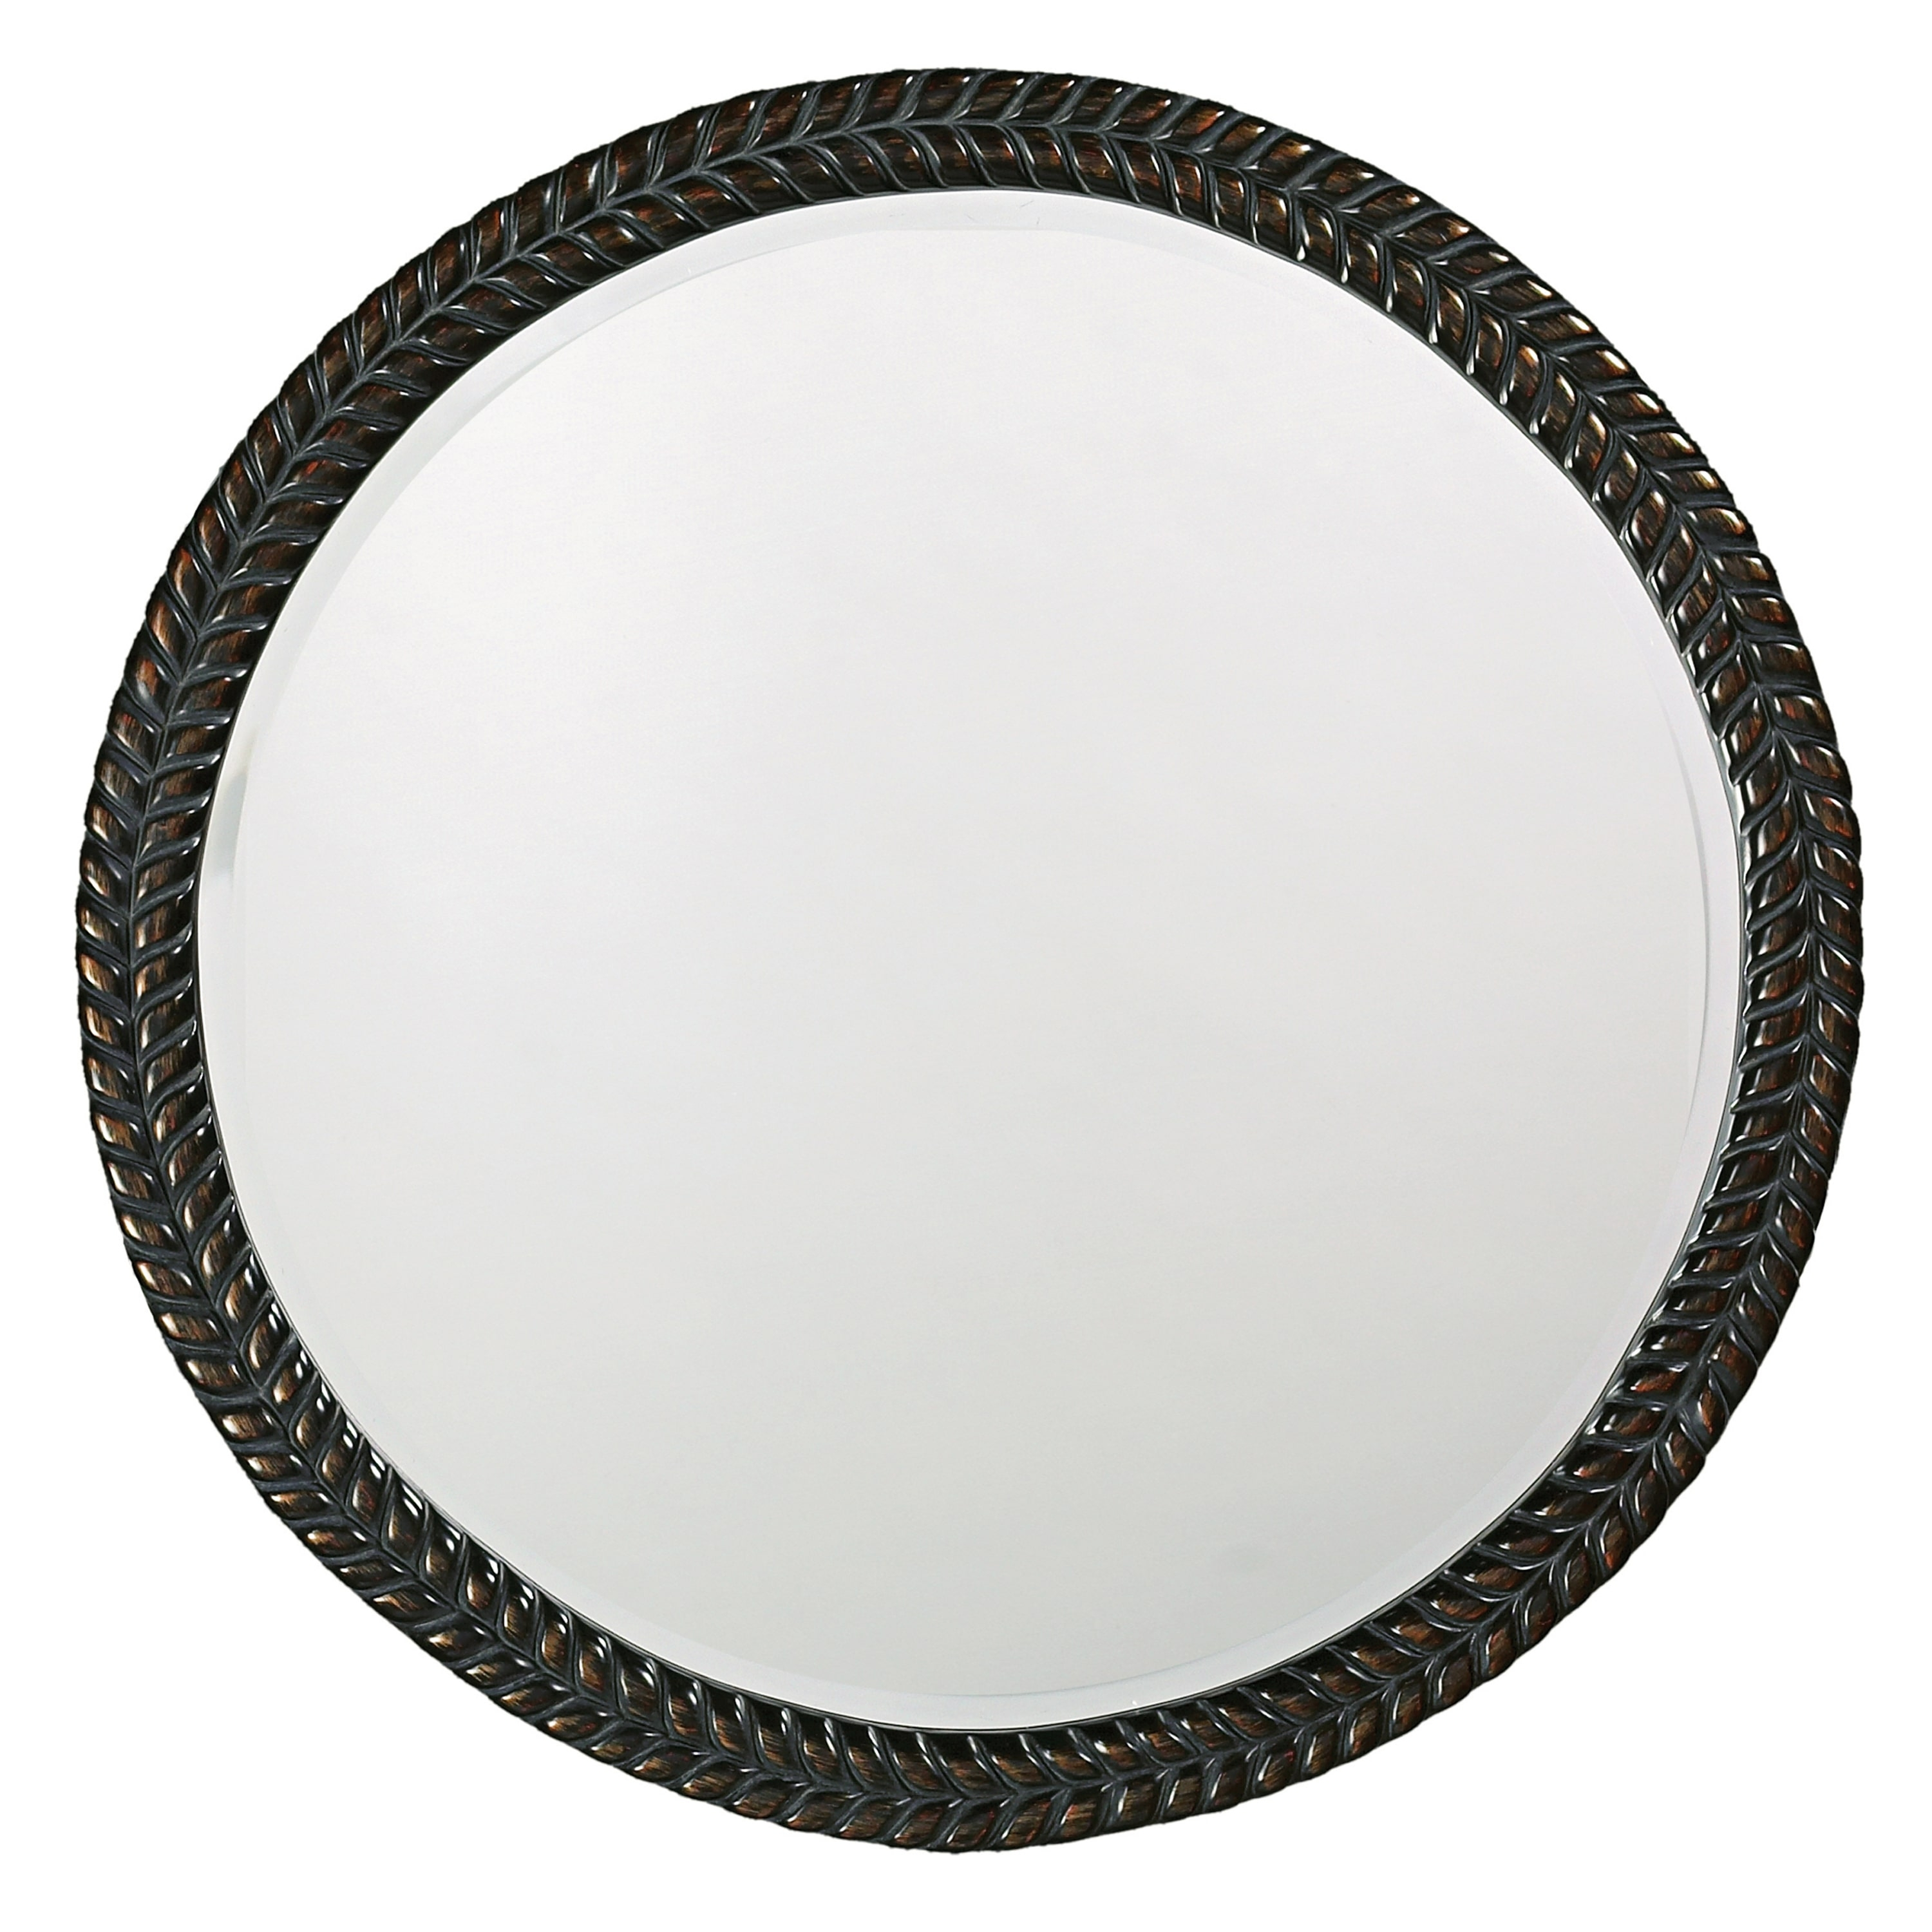 Amalie Black Herringbone Round Mirror Free Shipping Today Intended For Black Round Mirror (Image 4 of 15)